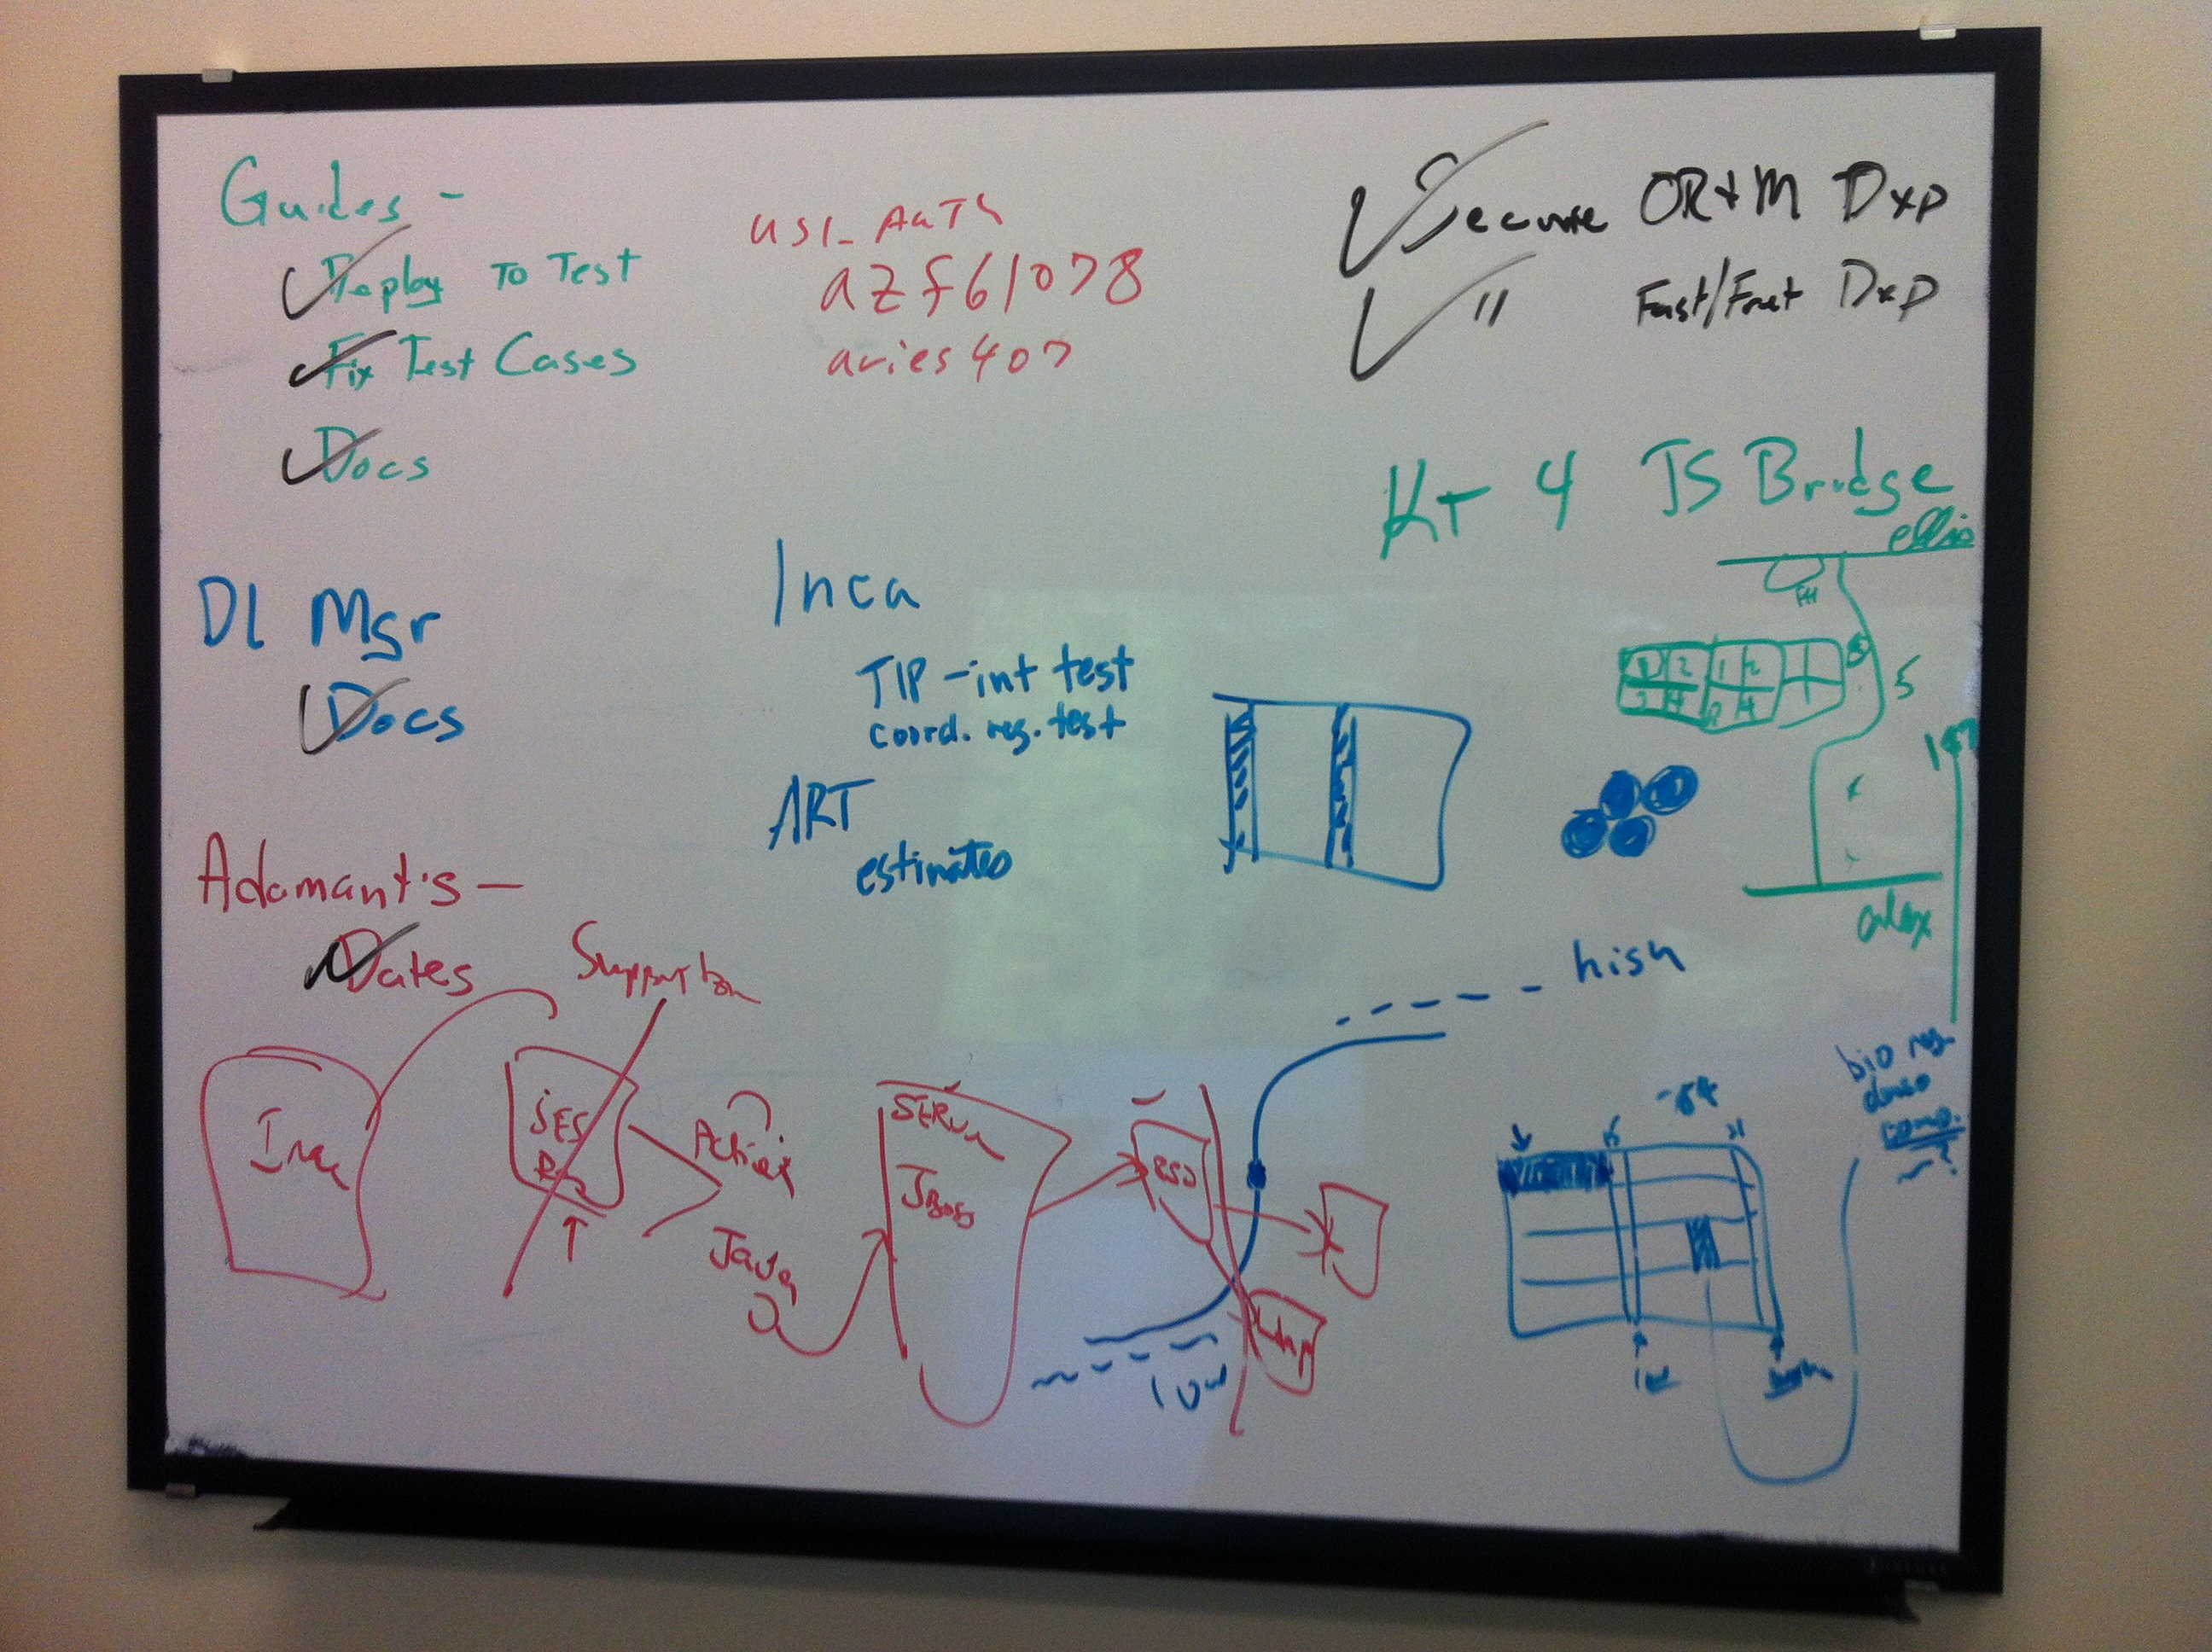 Pharma architecture and informatics whiteboards as the silo of